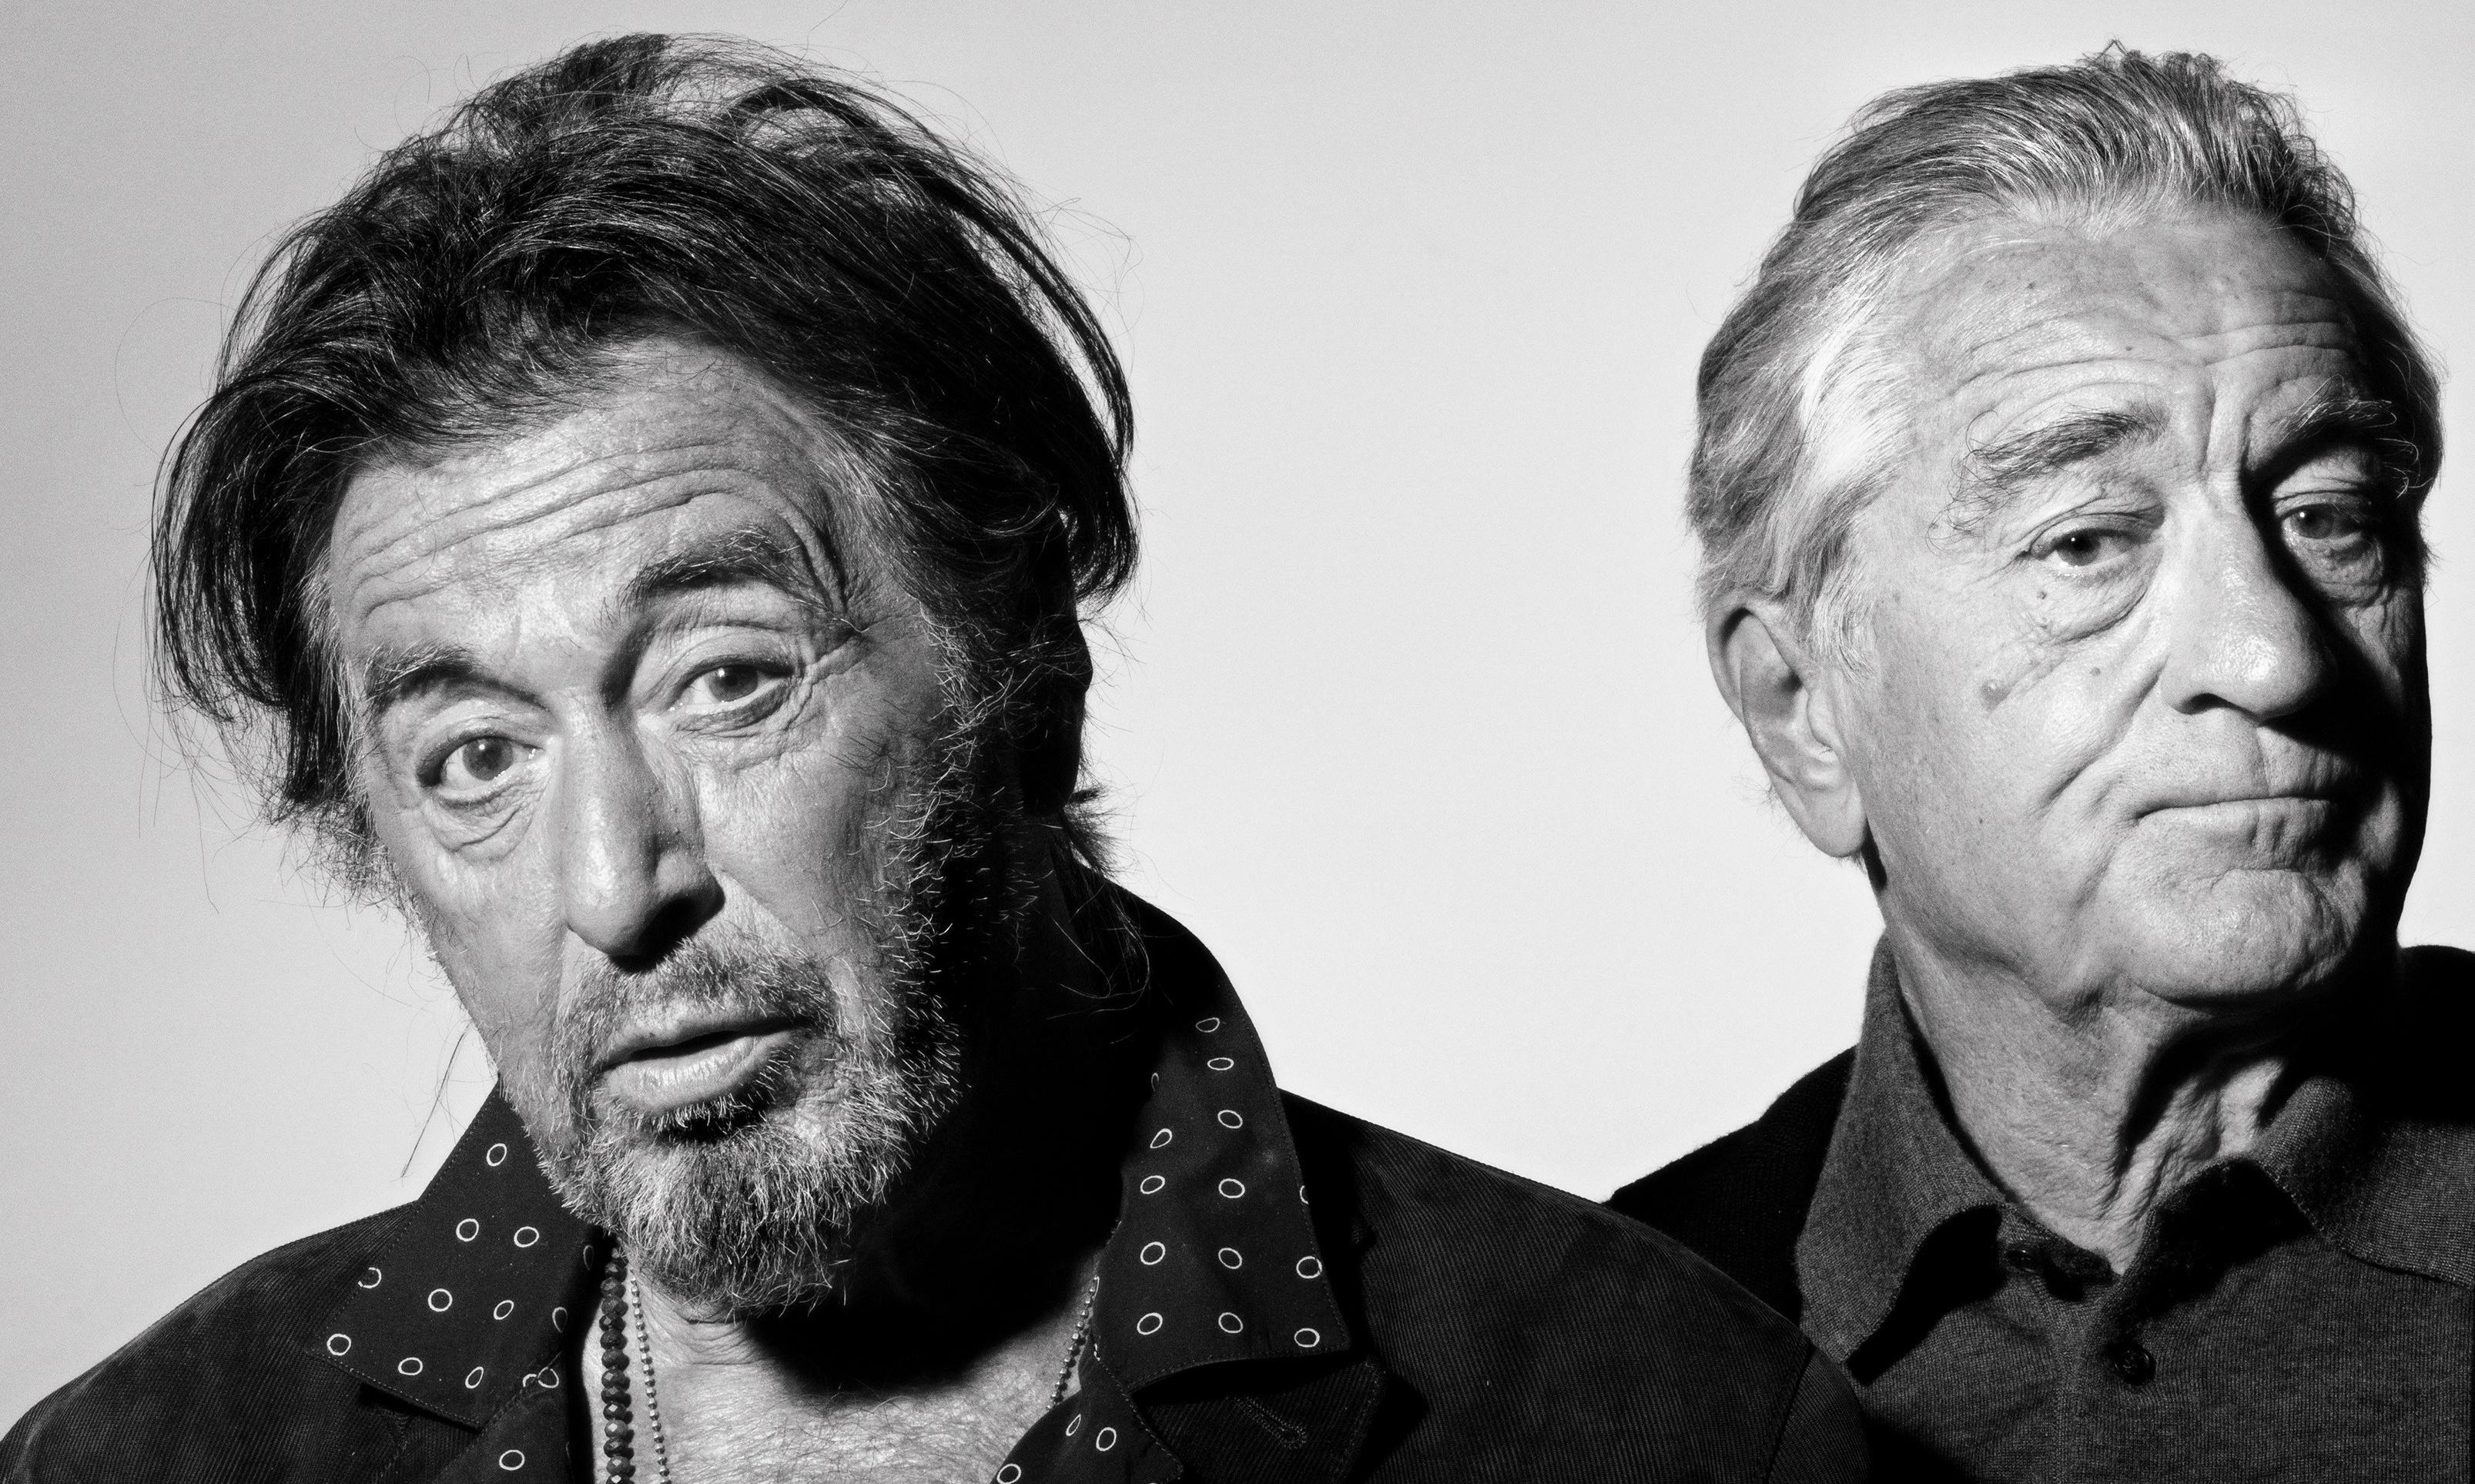 Robert De Niro and Al Pacino: 'We're not doing this ever again'